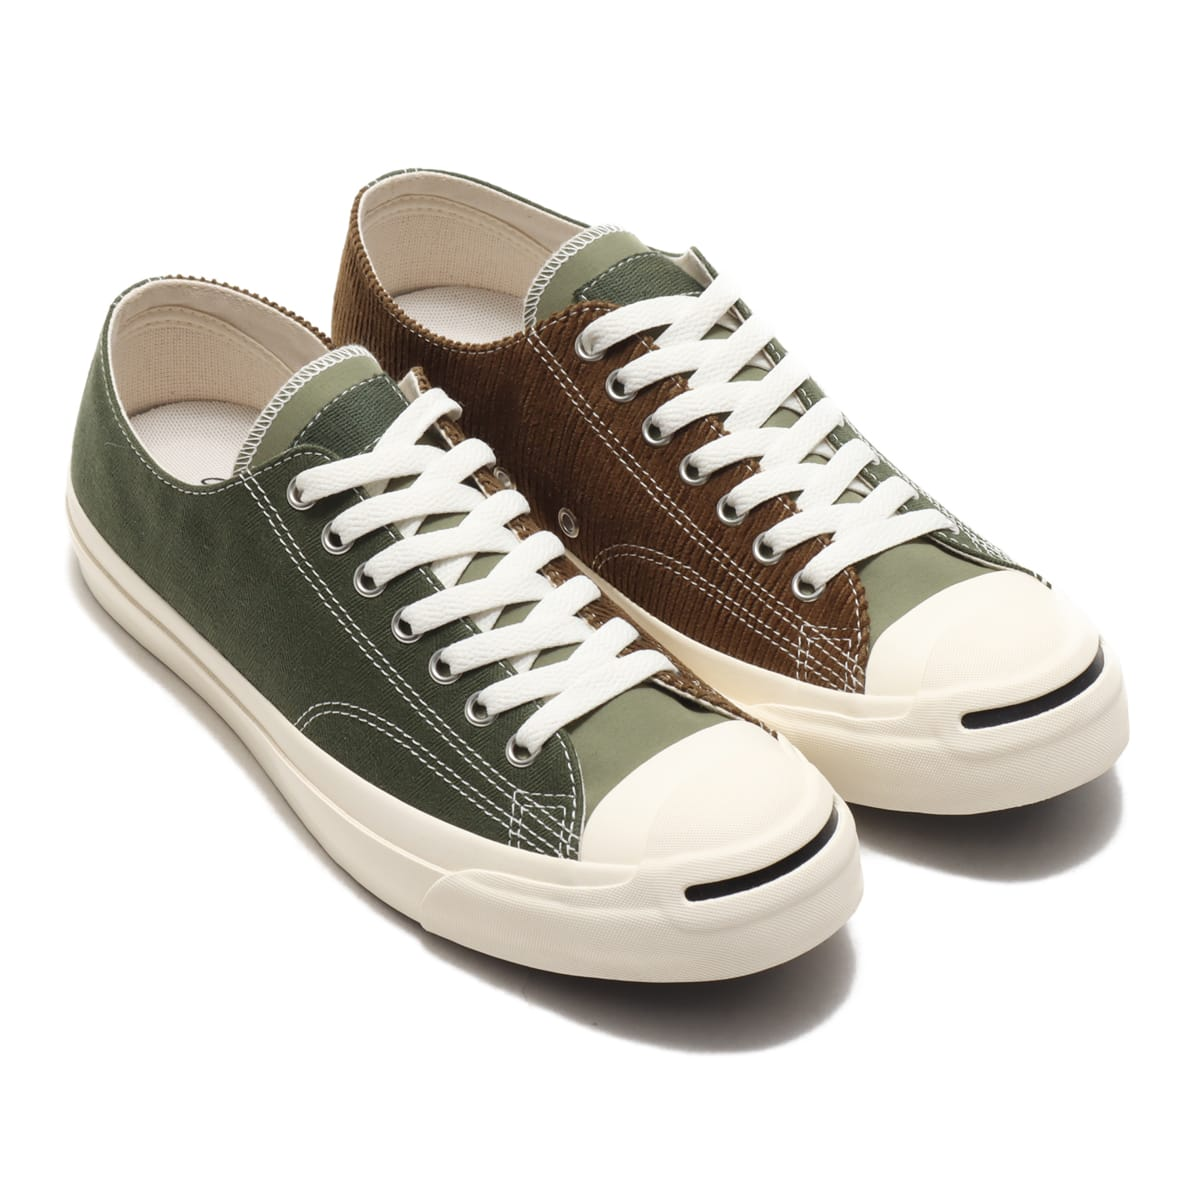 CONVERSE JACK PURCELL MULTIMATERIAL RH OLIVE 20FW-I_photo_large